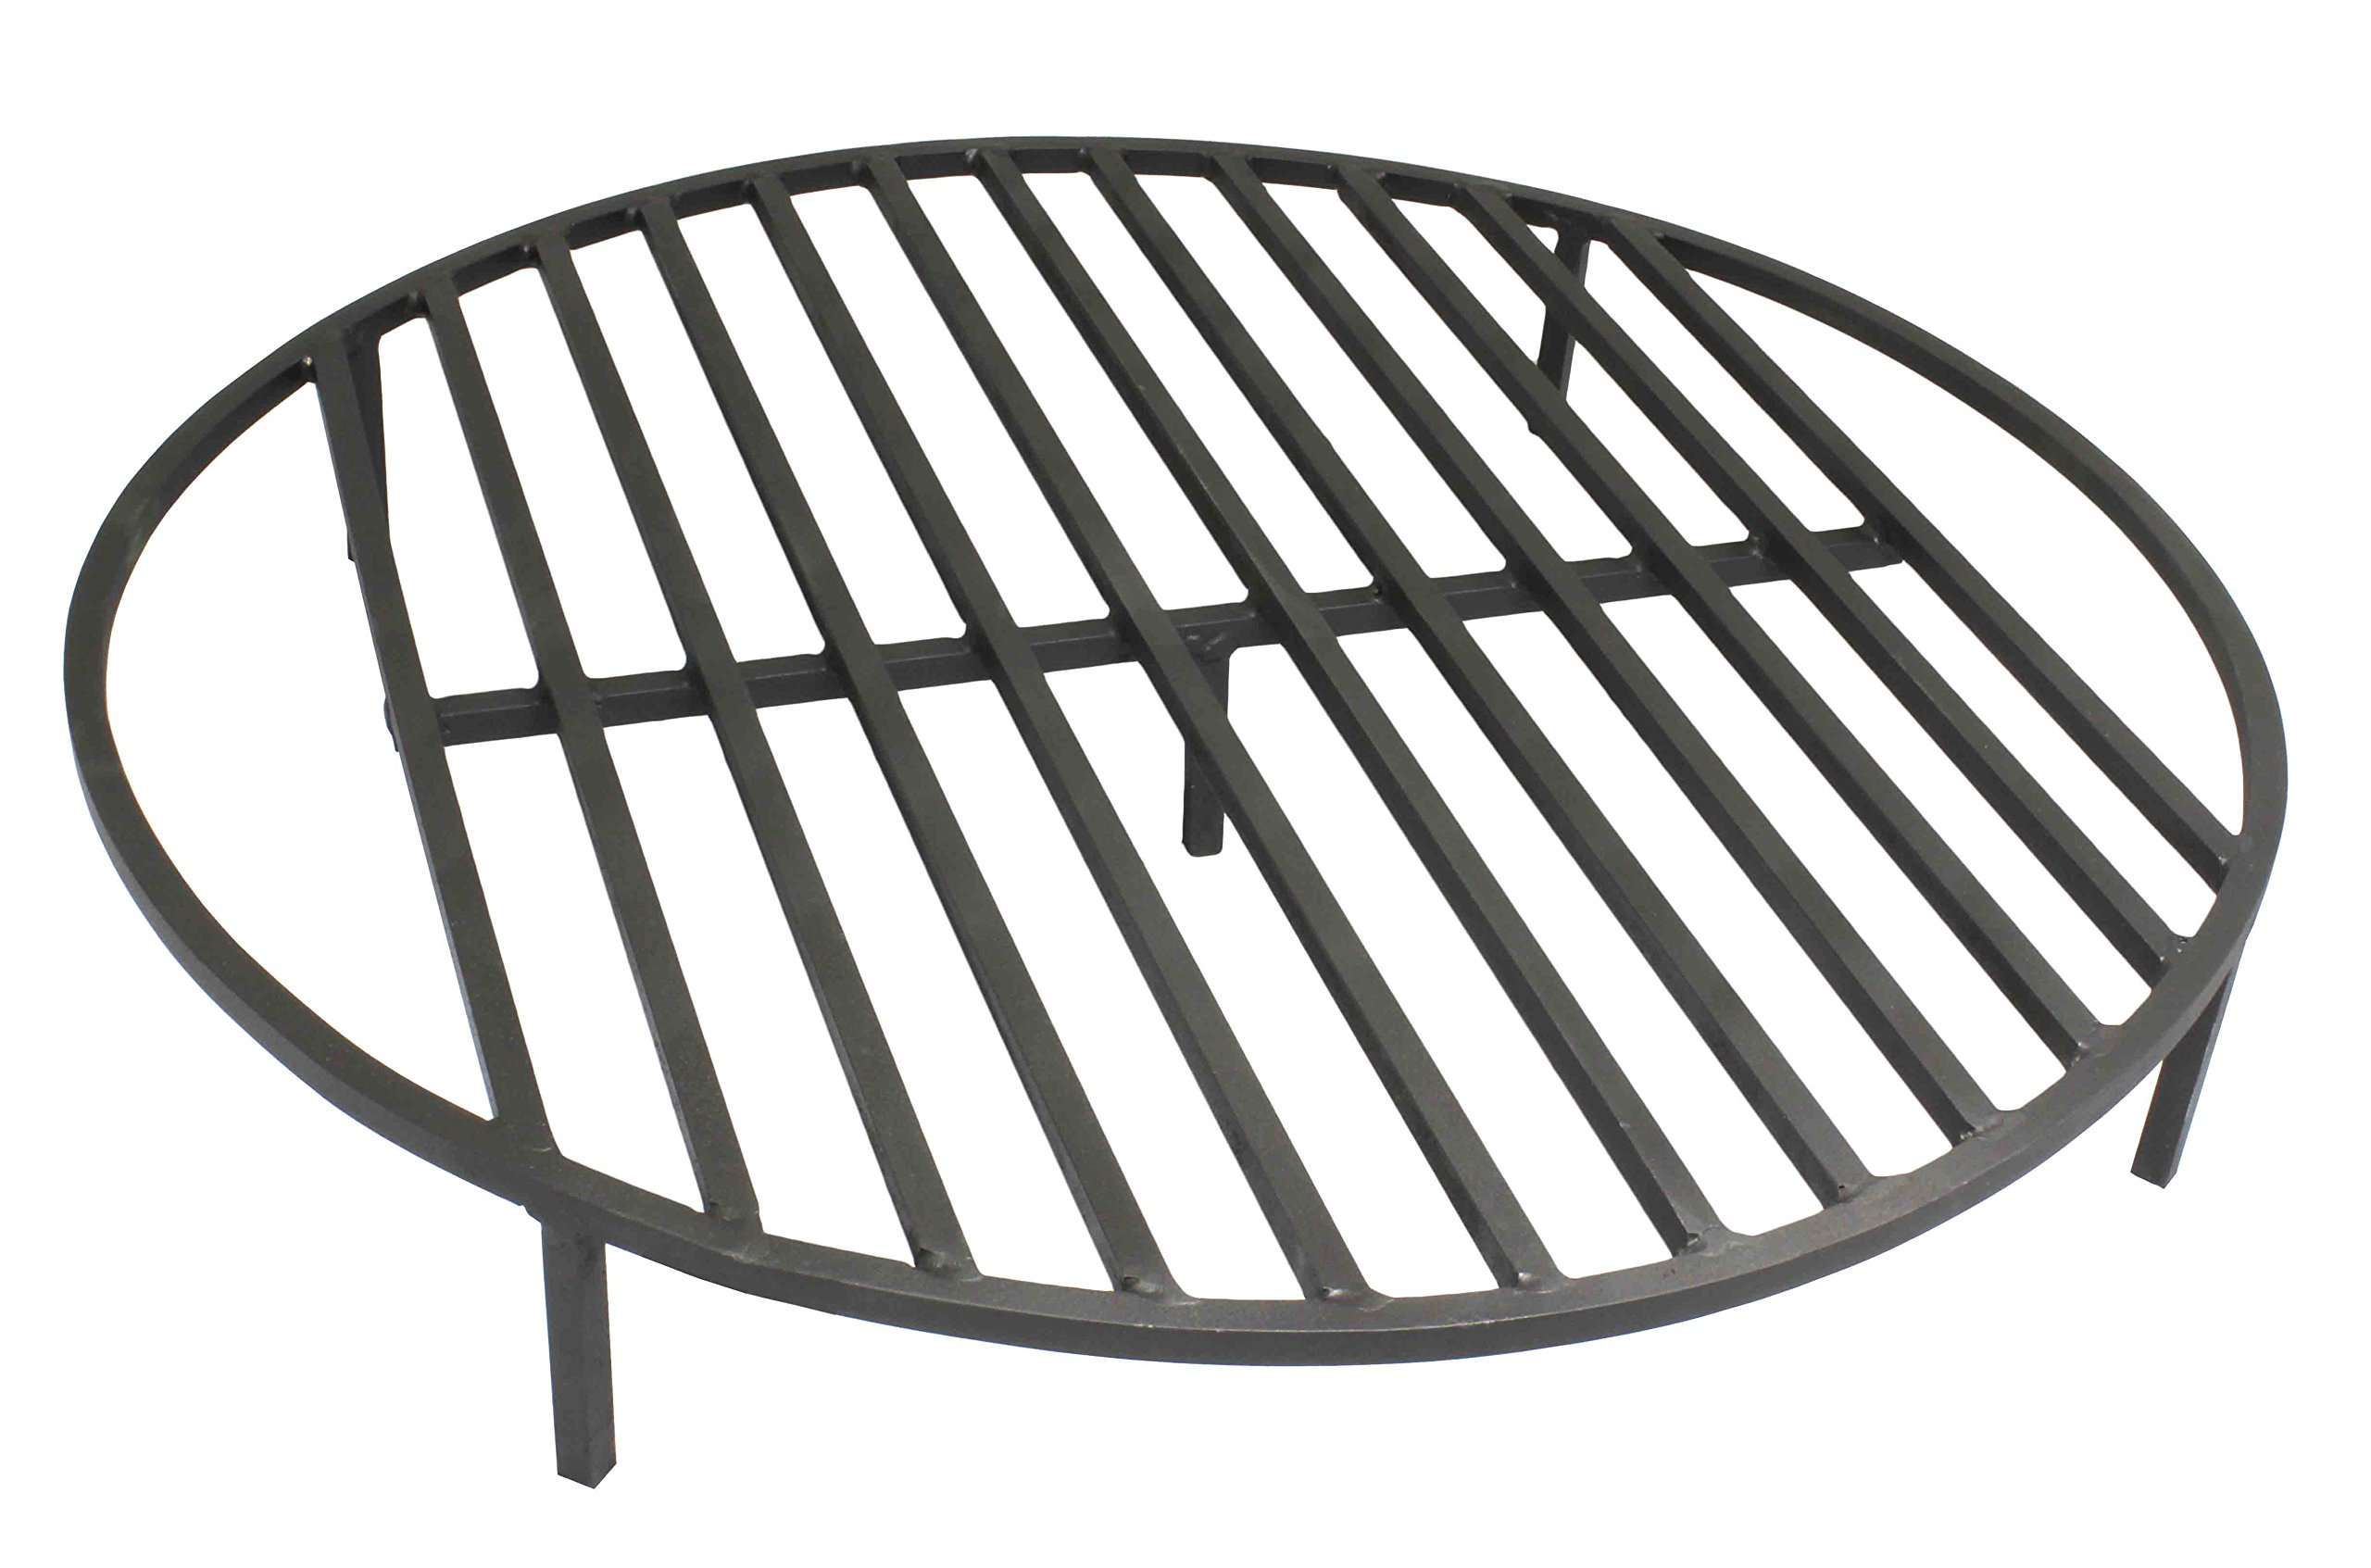 Titan Attachments Round Fire Pit Grate 30'' Heavy Duty Grill Cooking Campfire Camp Ring 1/2 Steel